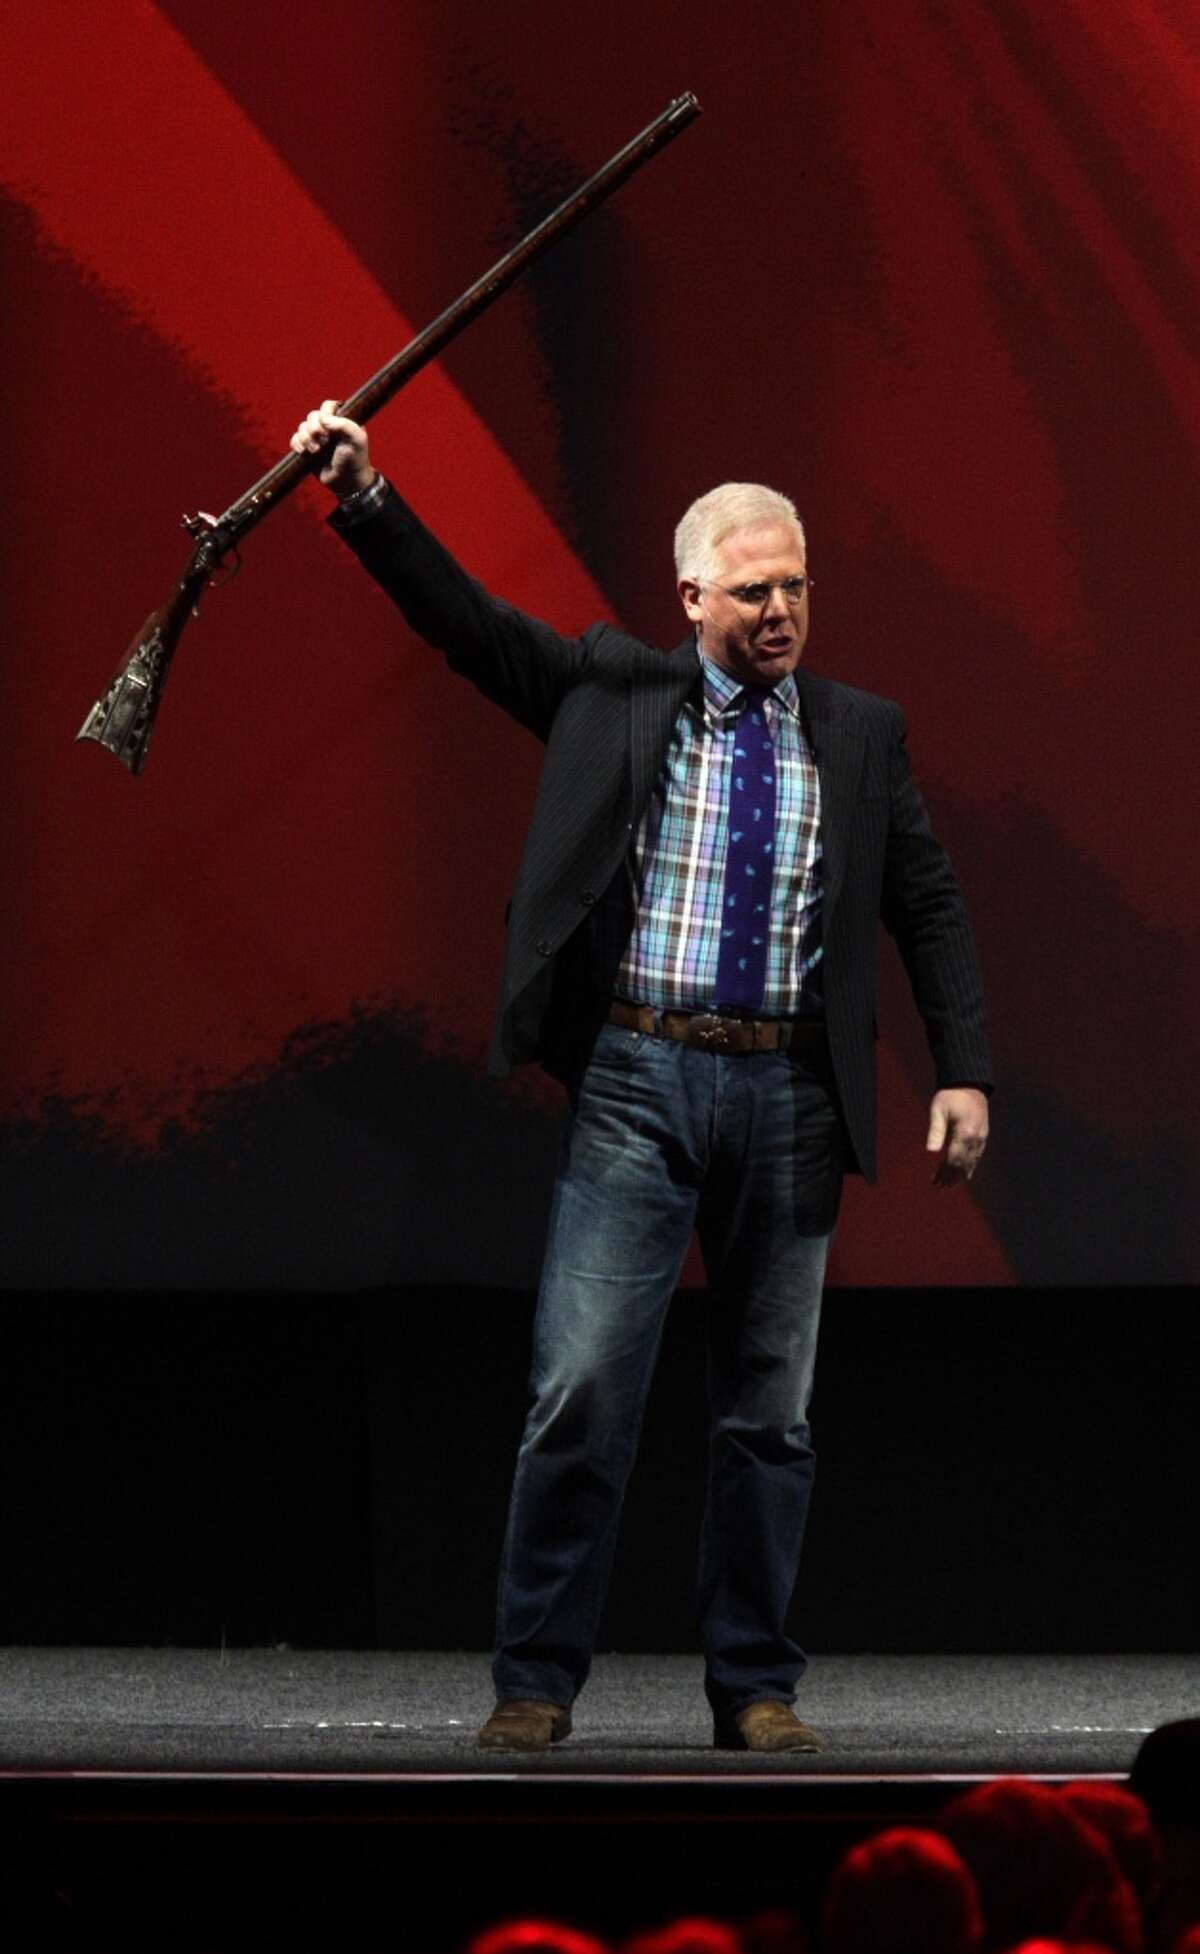 Glenn Beck speaks during the NRA convention at the George R. Brown Convention Center Saturday, May 4, 2013, in Houston. ( Melissa Phillip / Houston Chronicle )